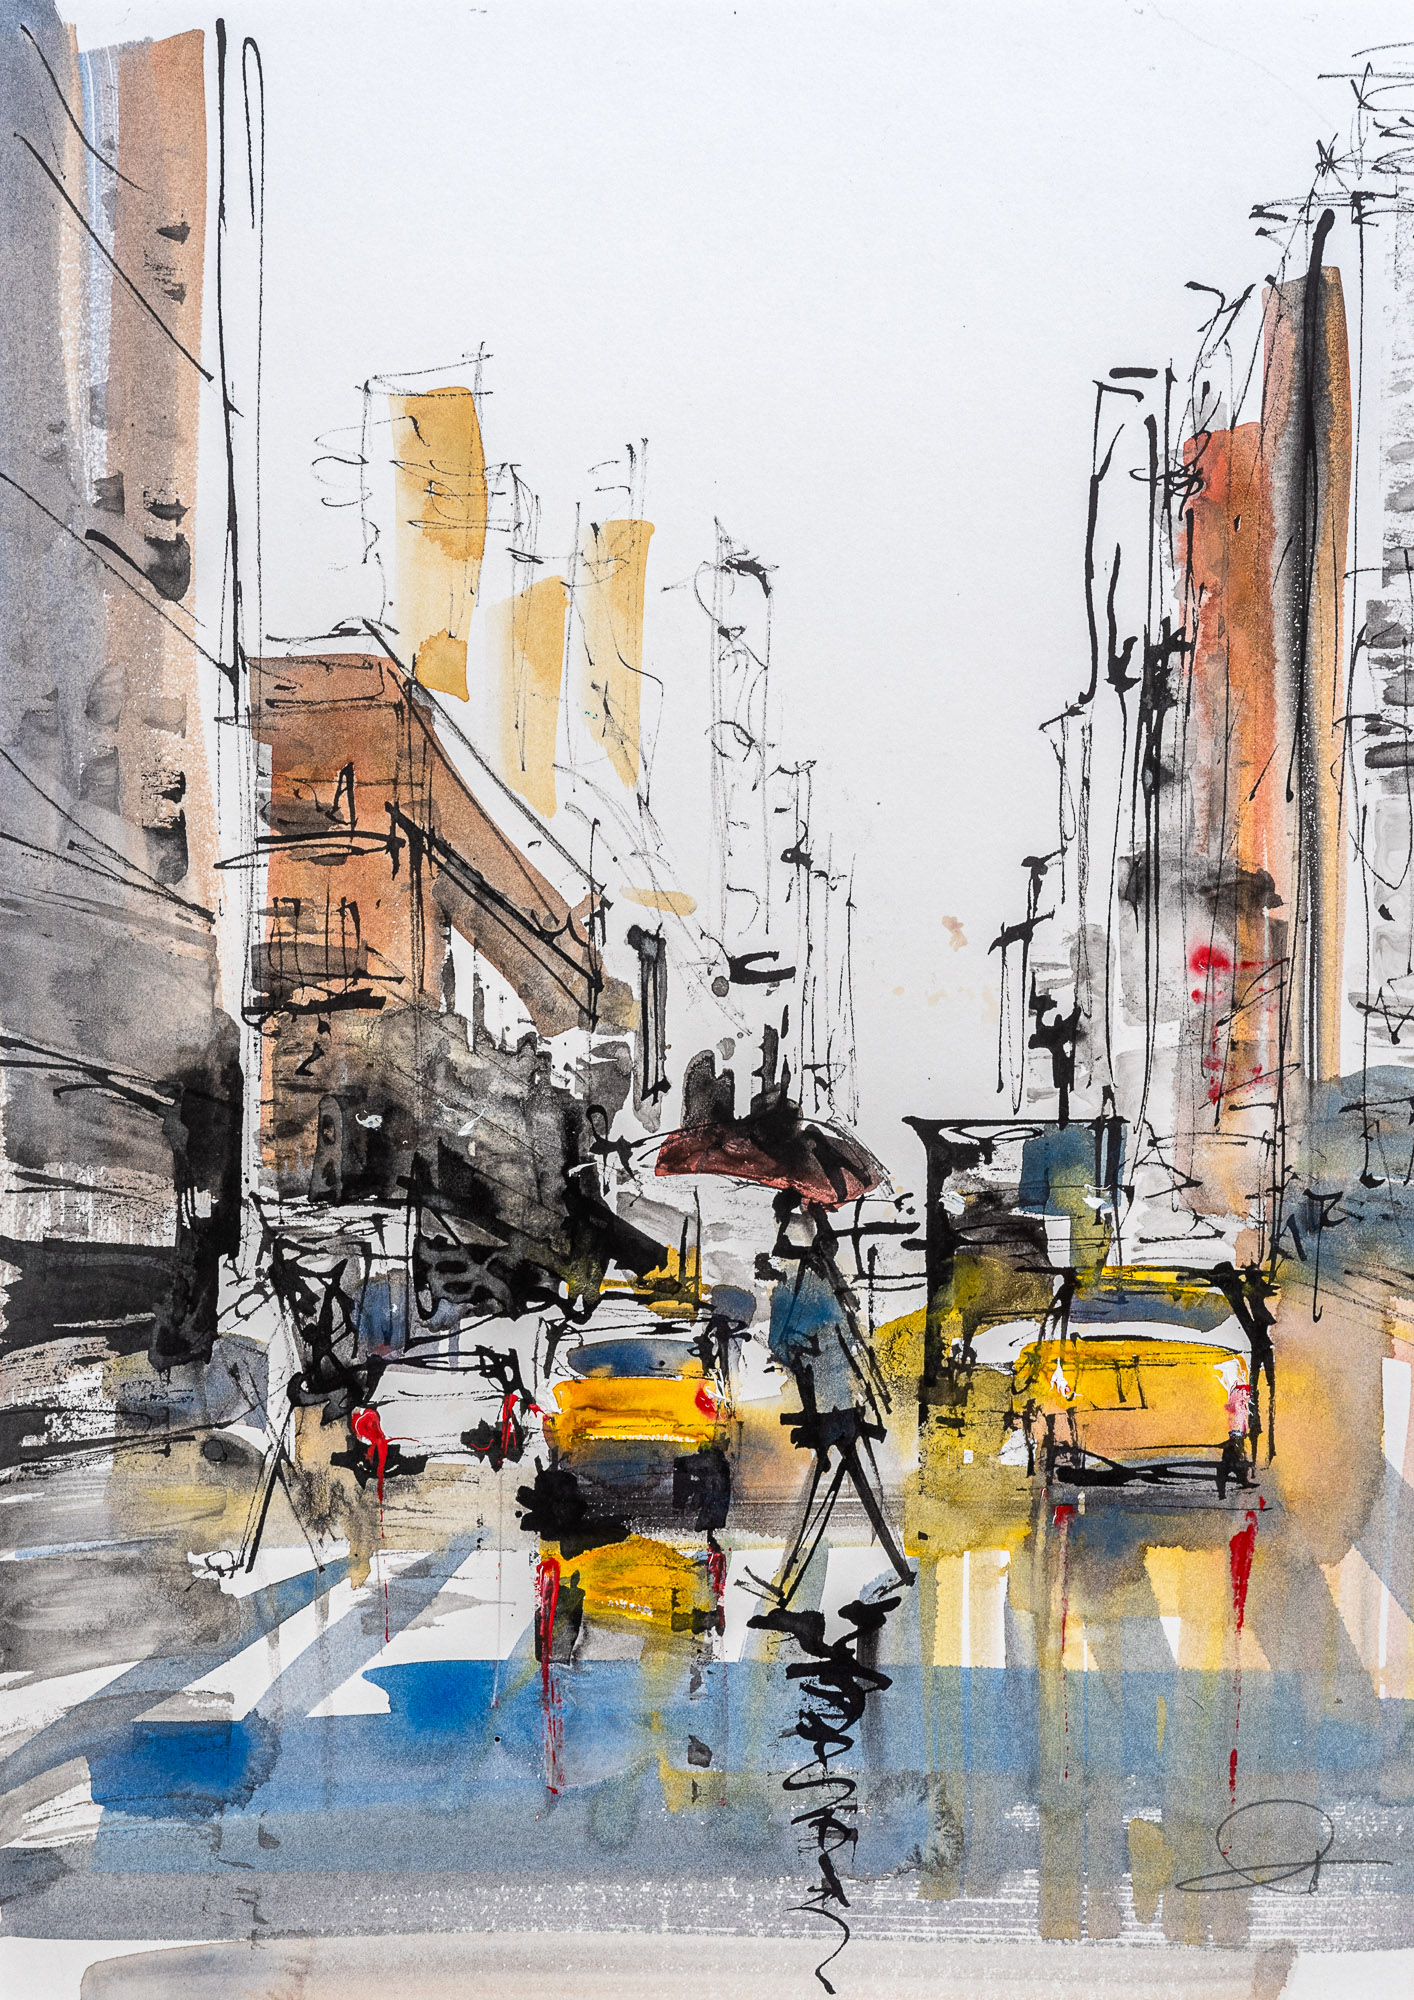 Moving Forward - Original New York Watercolour Painting by UK Cityscape Artist Paul Kenton, from the Watercolour Collection